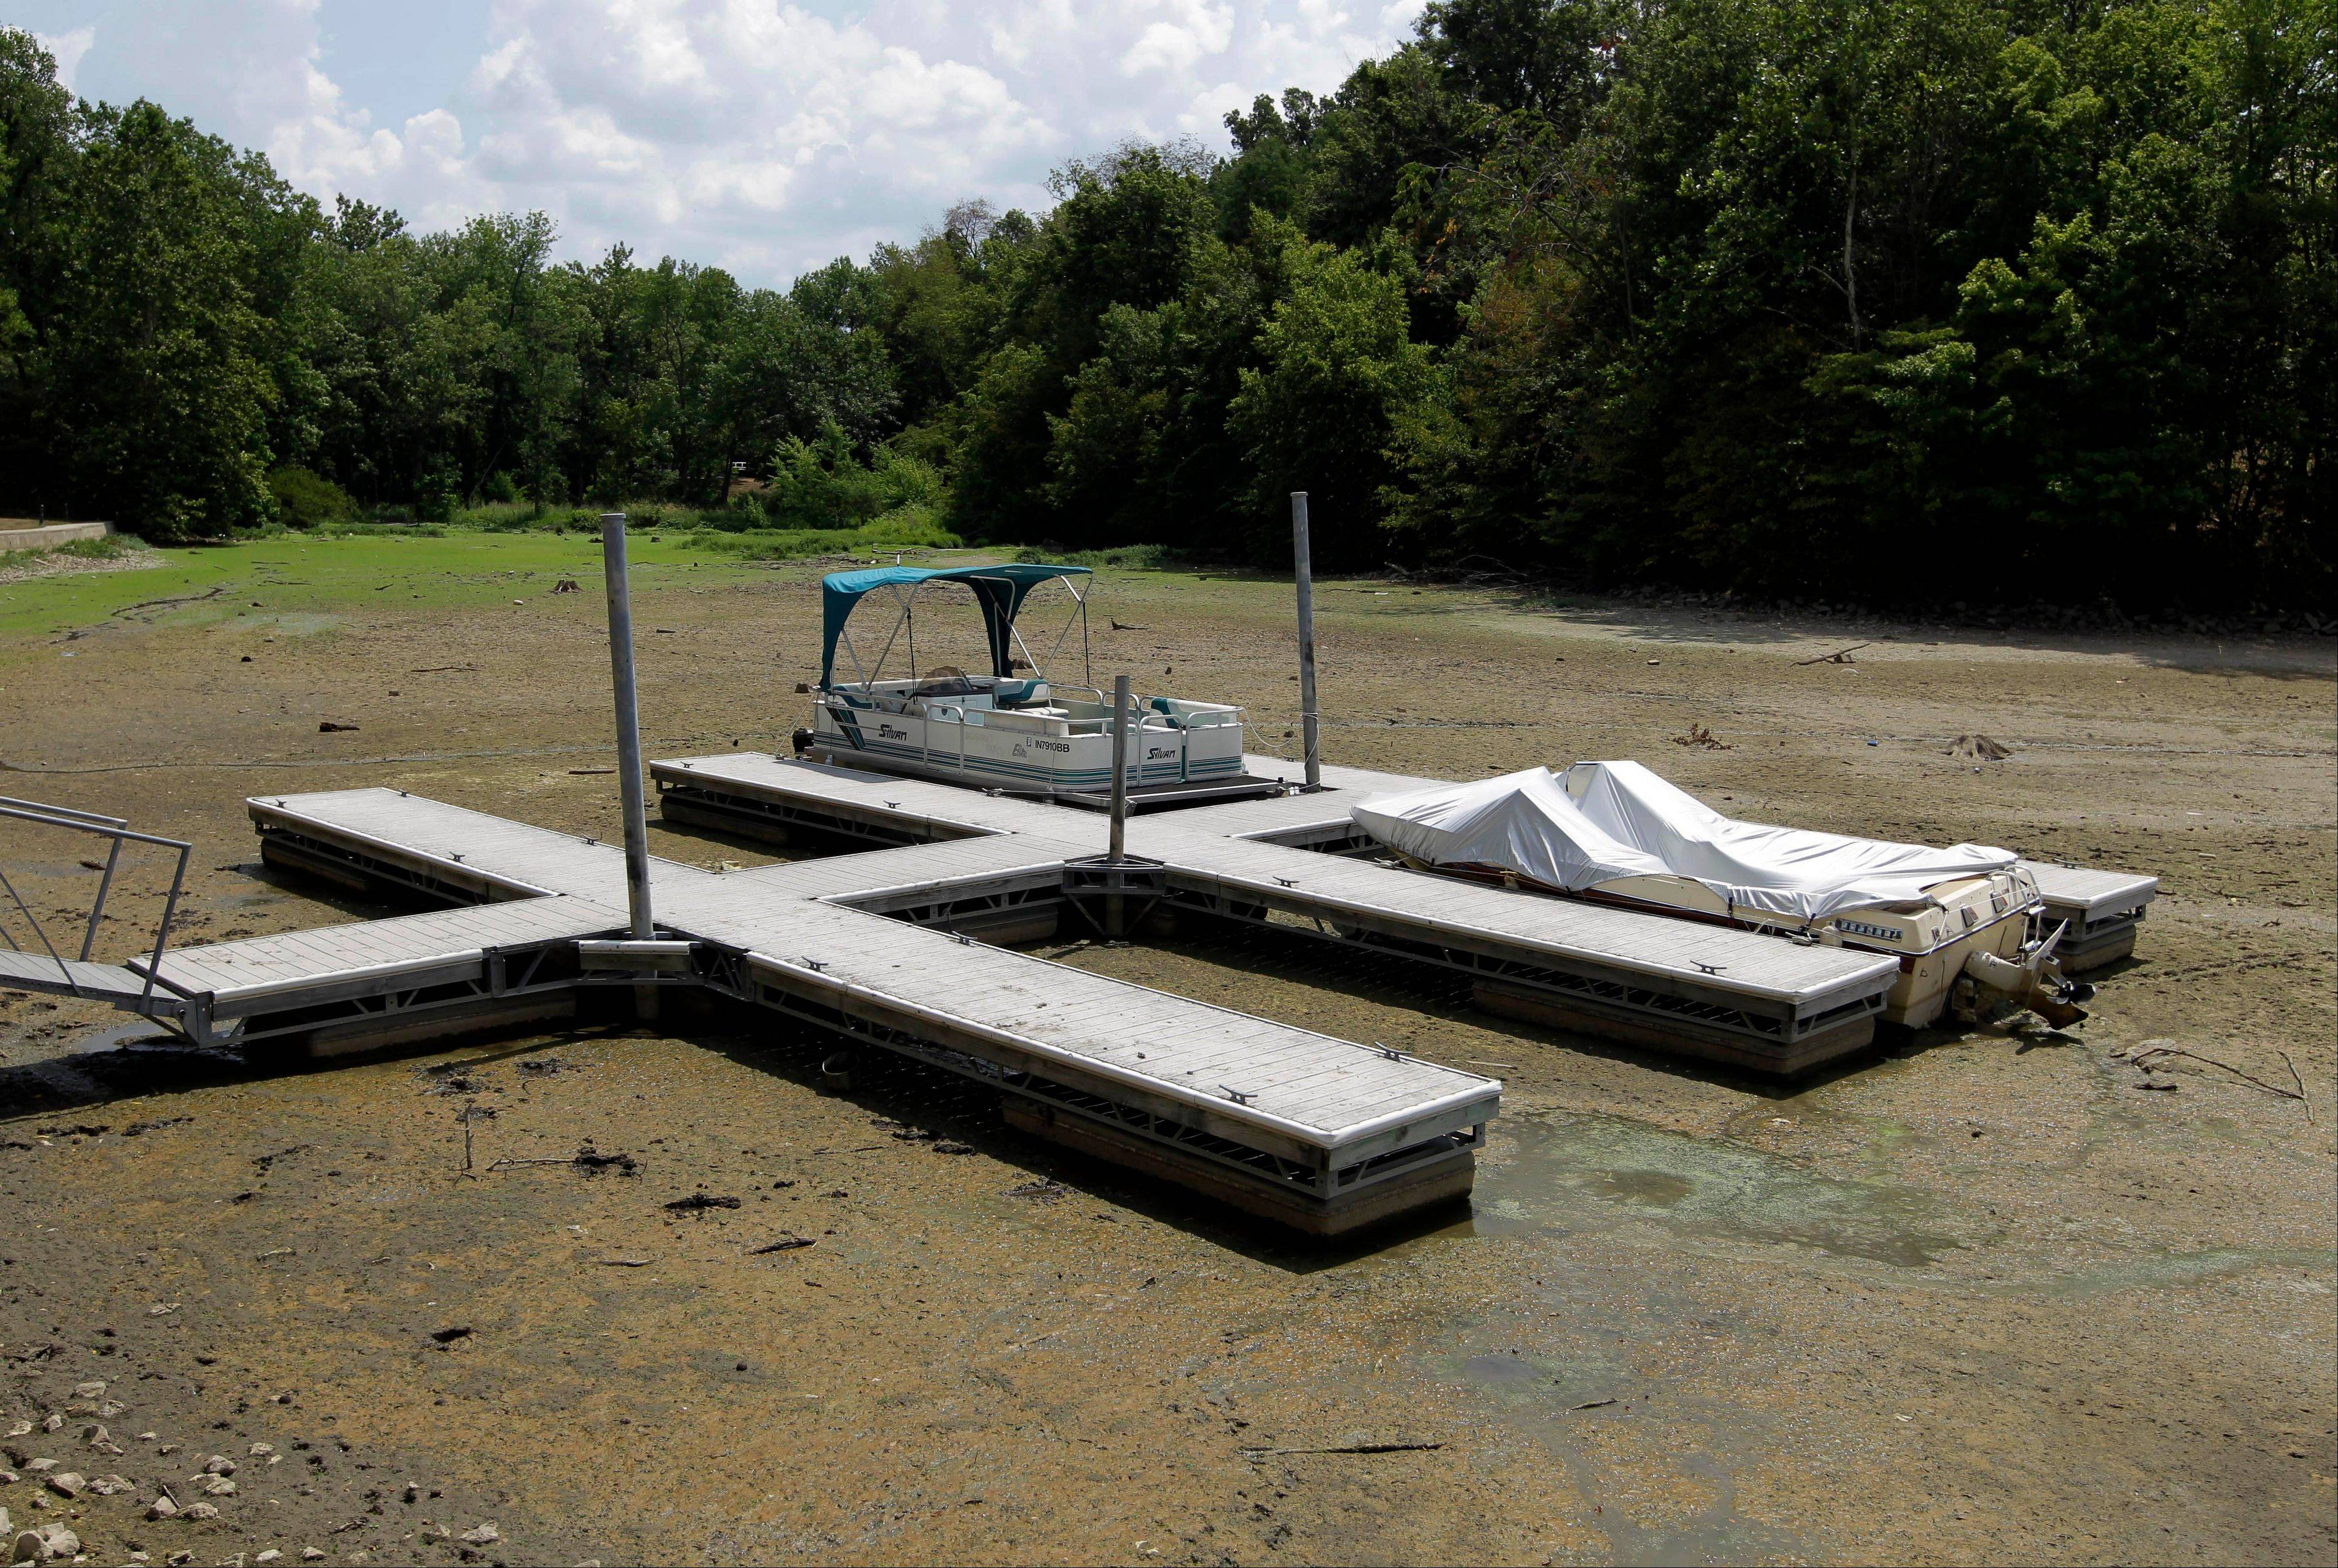 Boats sit on the bottom in a dry cove at Morse Reservoir in Noblesville, Ind., Monday, July 16, 2012. The reservoir is down nearly 6 feet from normal levels and being lowered 1 foot every five days to provide water for Indianapolis.